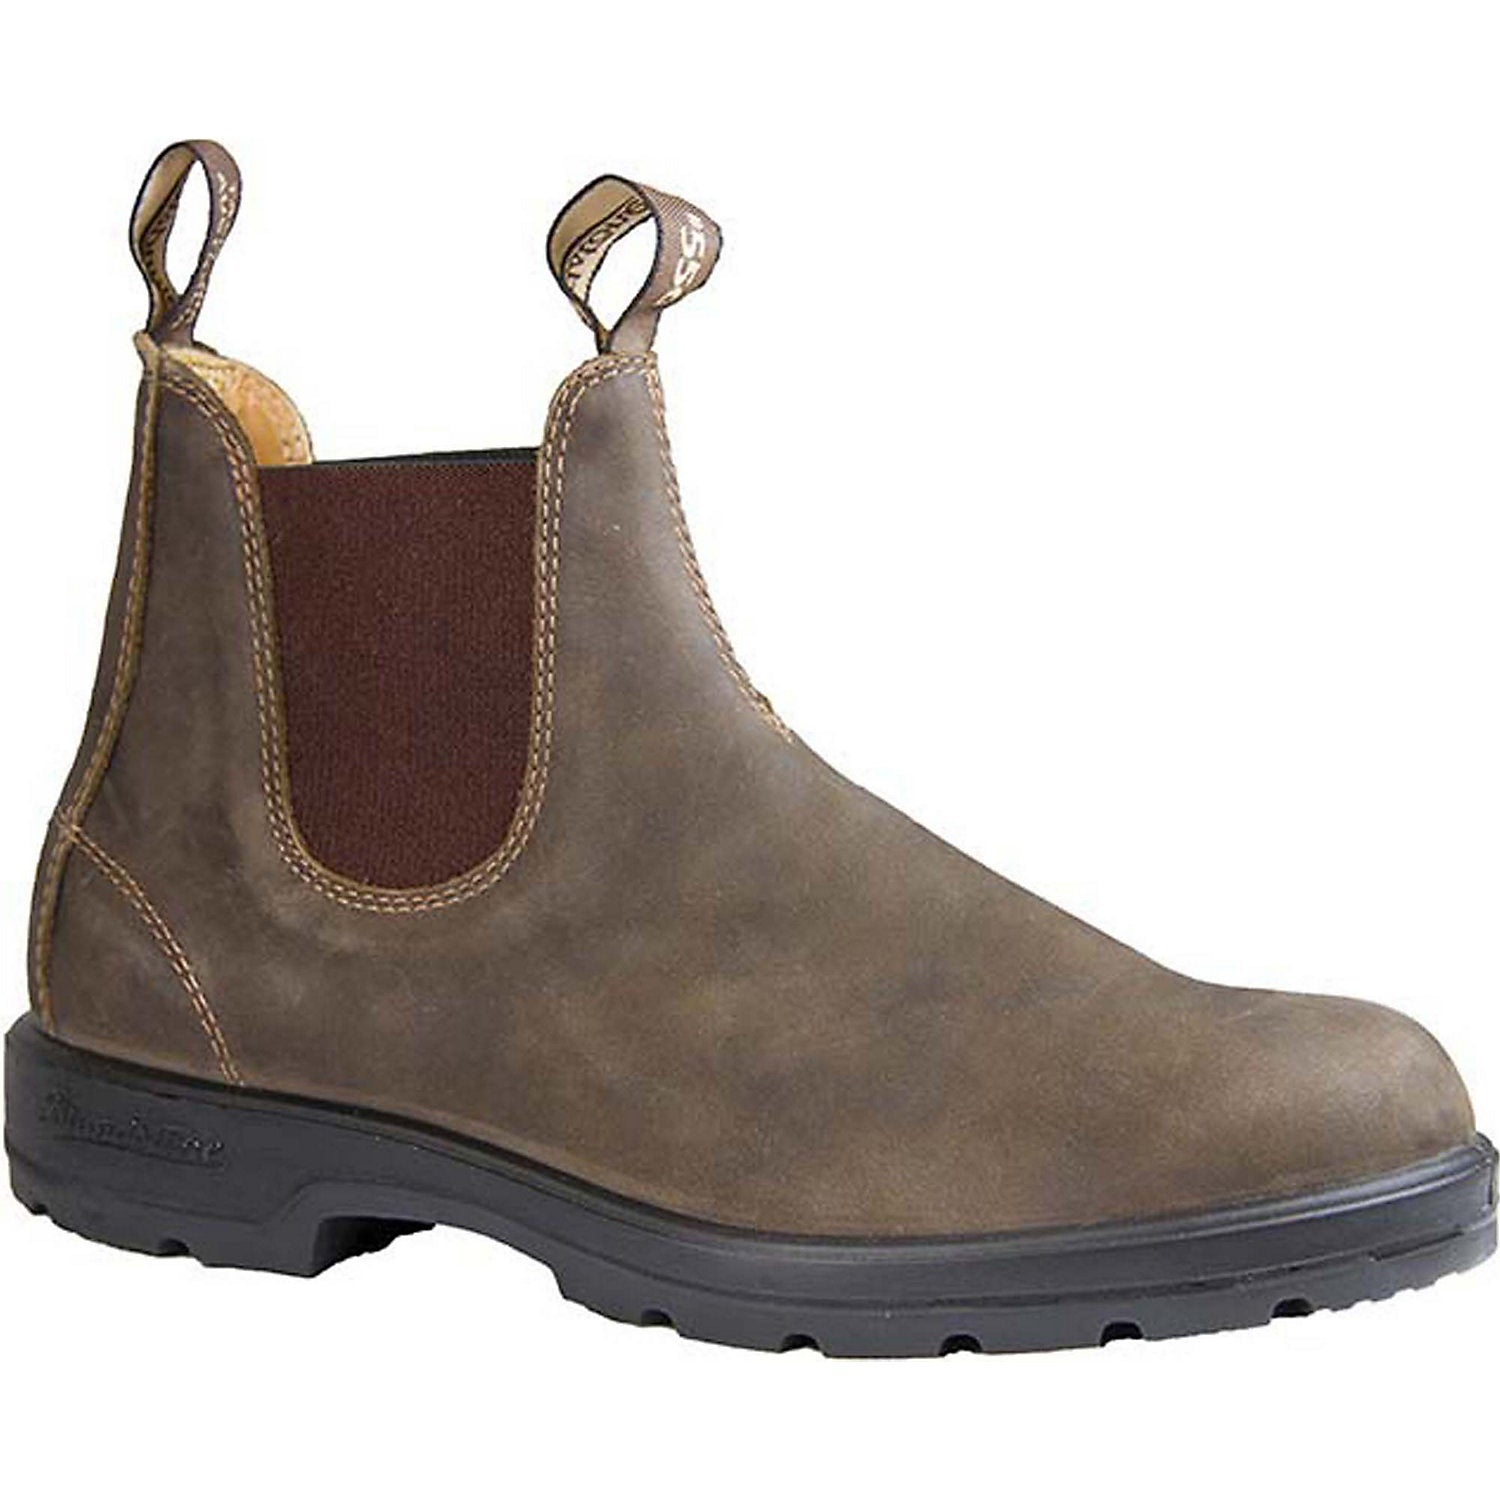 Blundstone 585 Boot